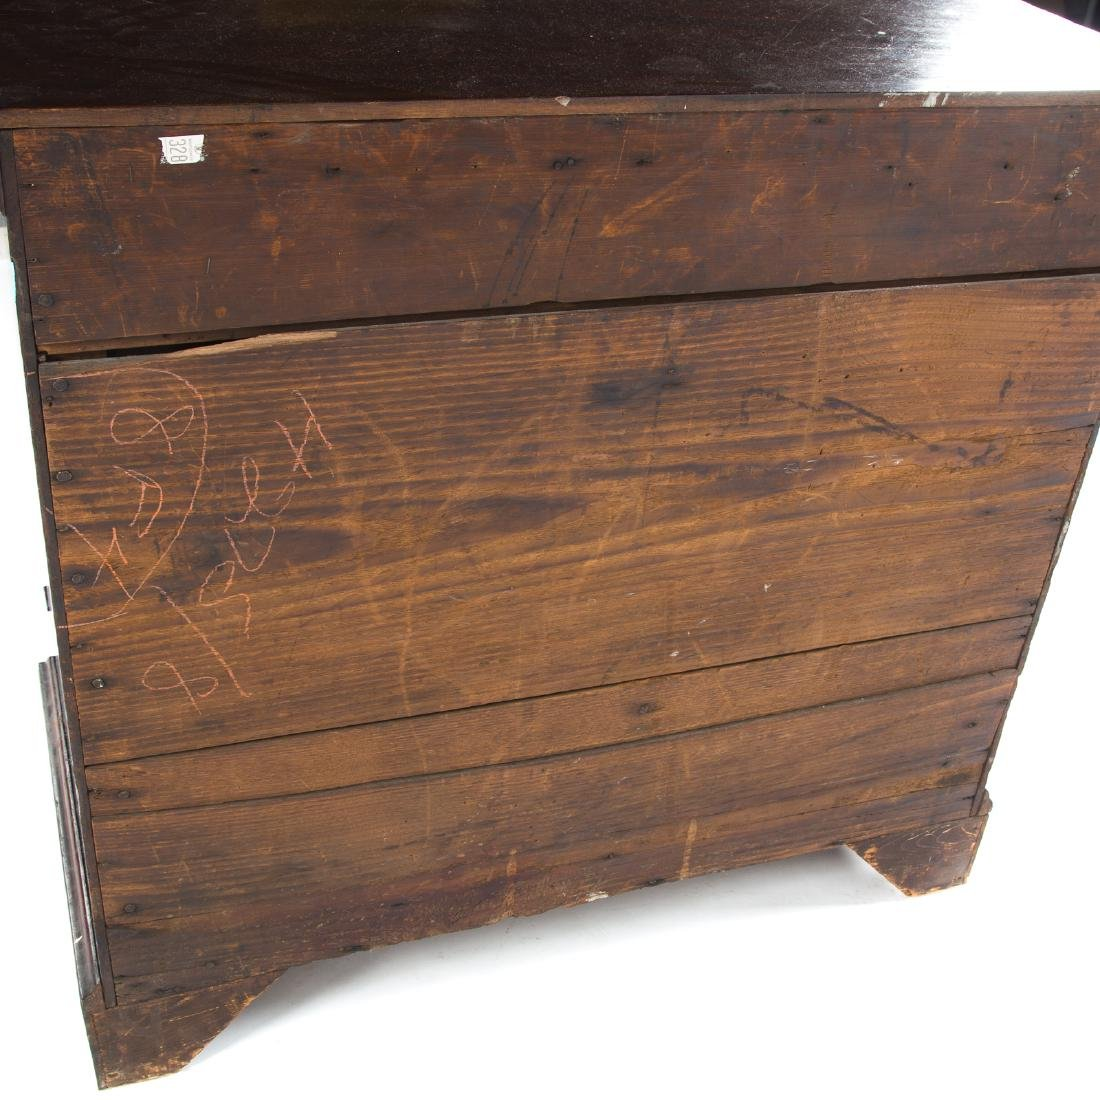 Chippendale mahogany chest of drawers - 5